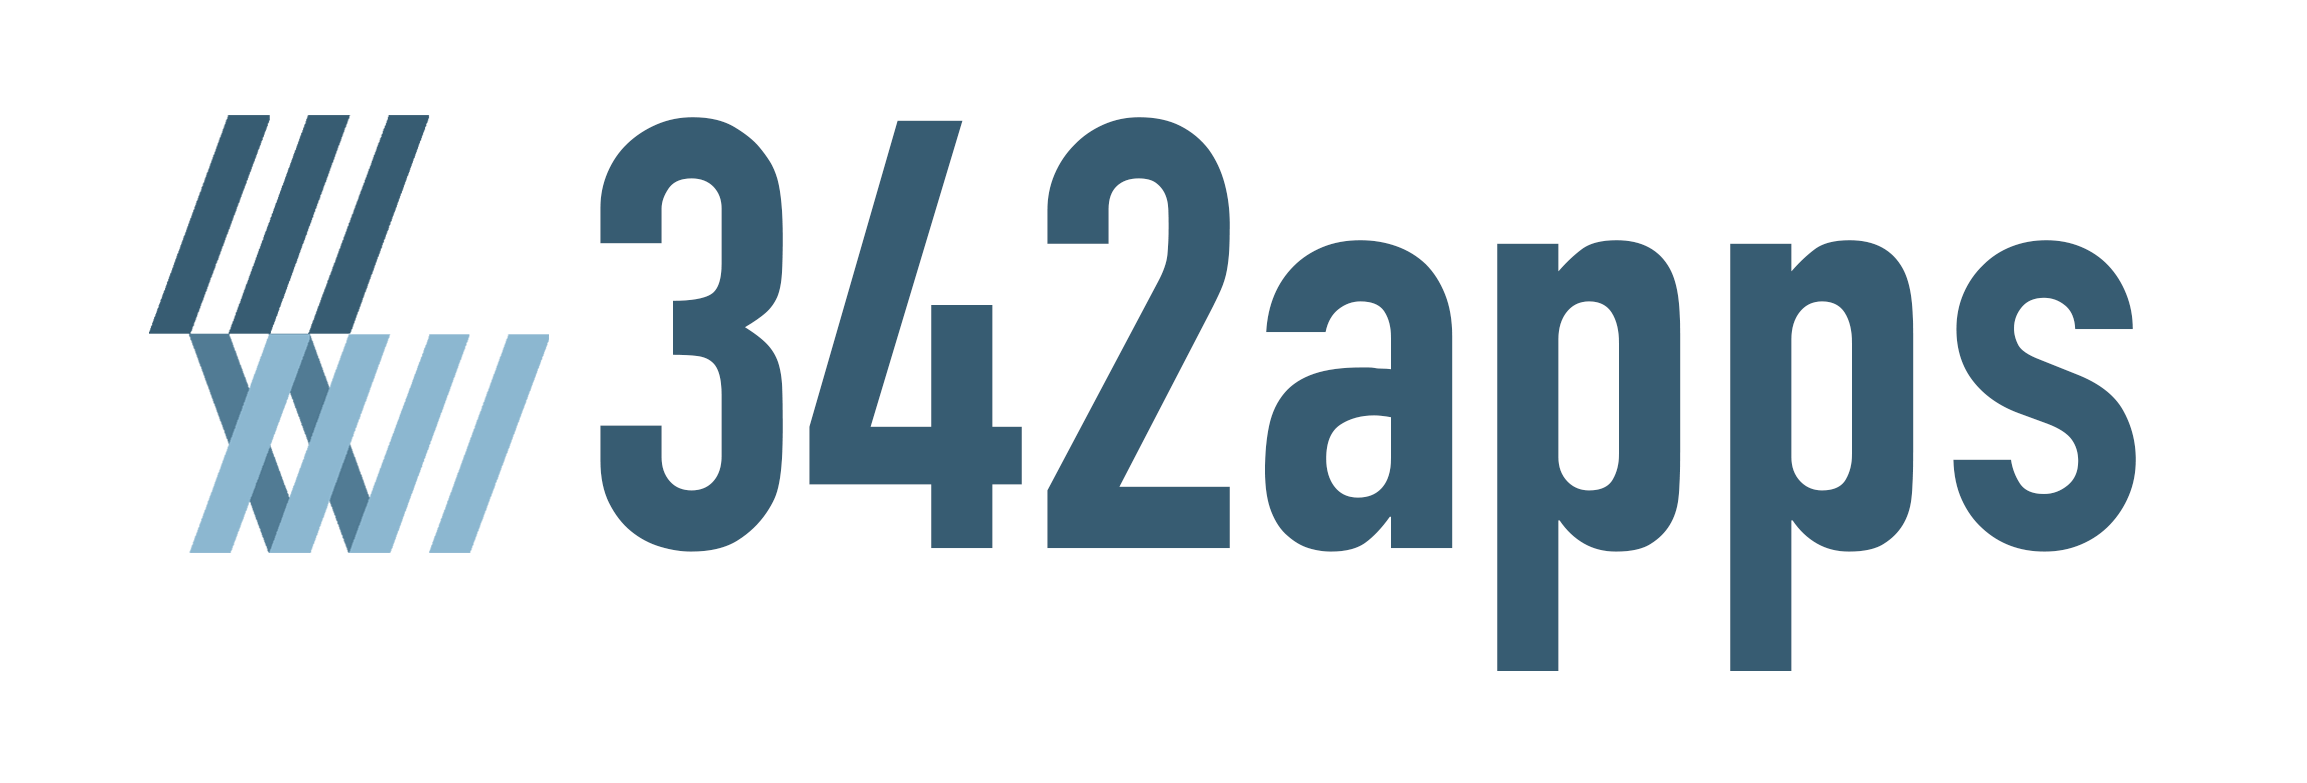 342apps